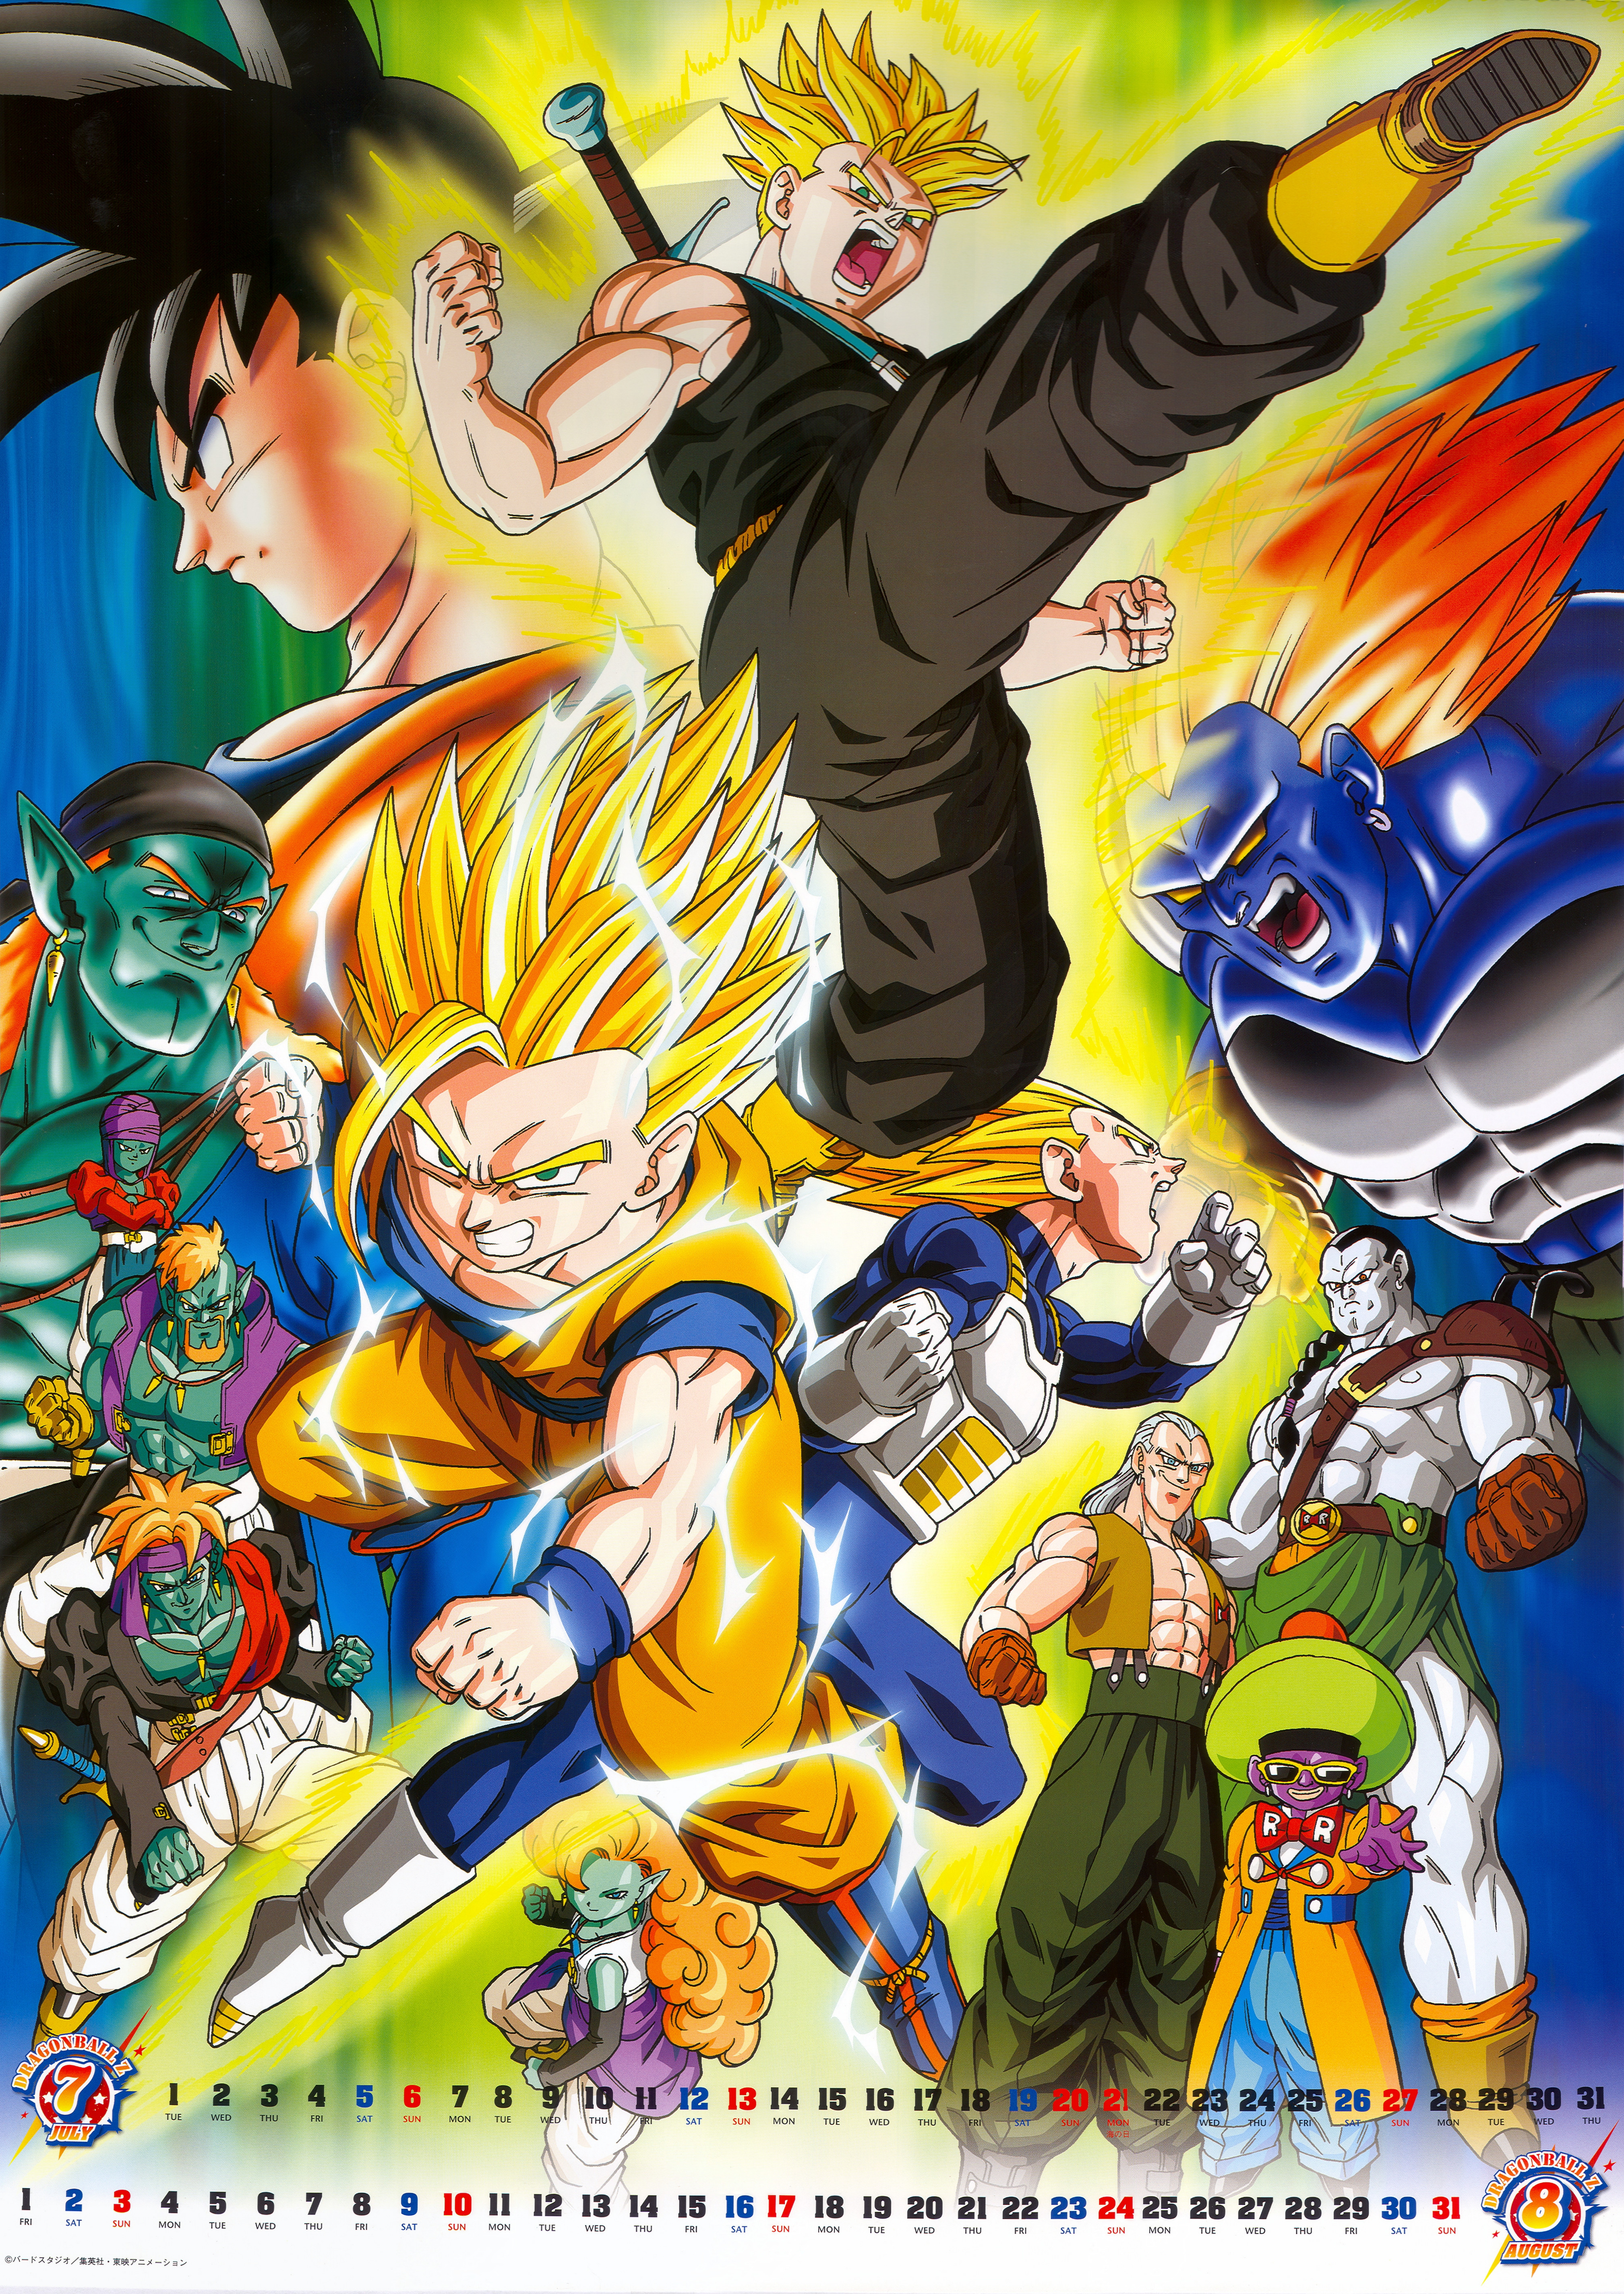 Zangya dragon ball z bojack unbound zerochan anime image board - Photo dragon ball z ...